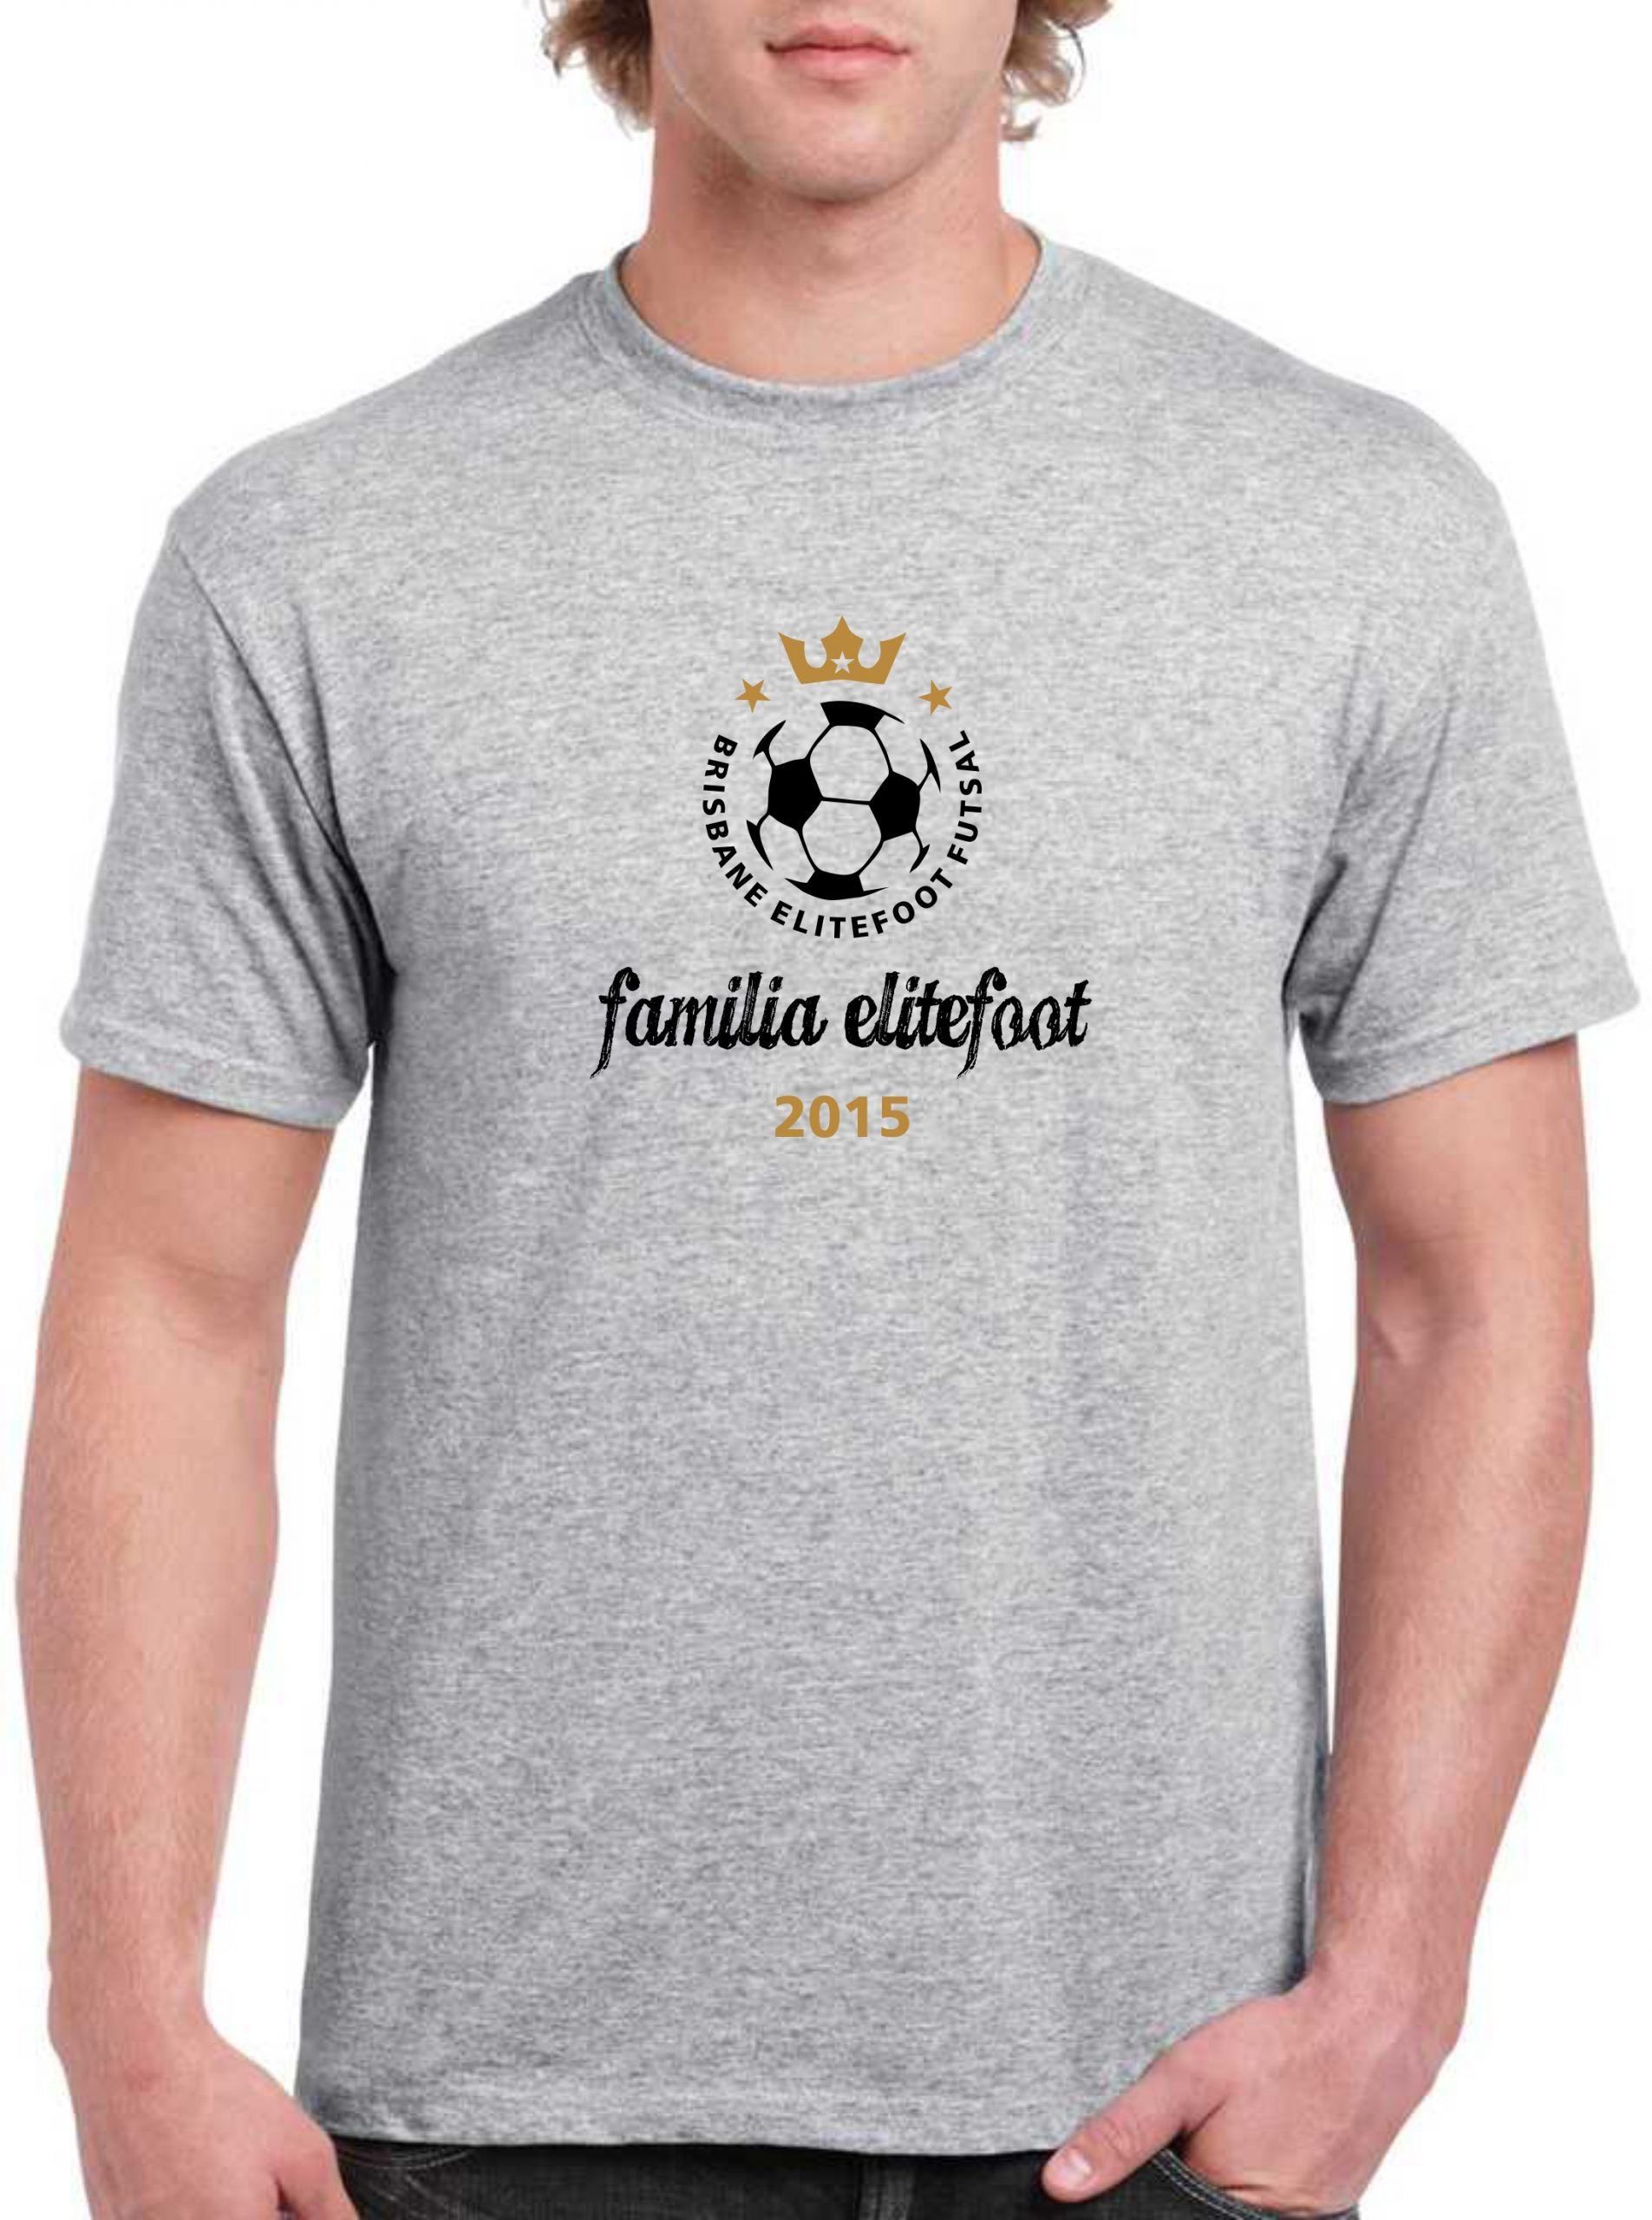 Supporter's T-Shirt (2 Shirts Price)